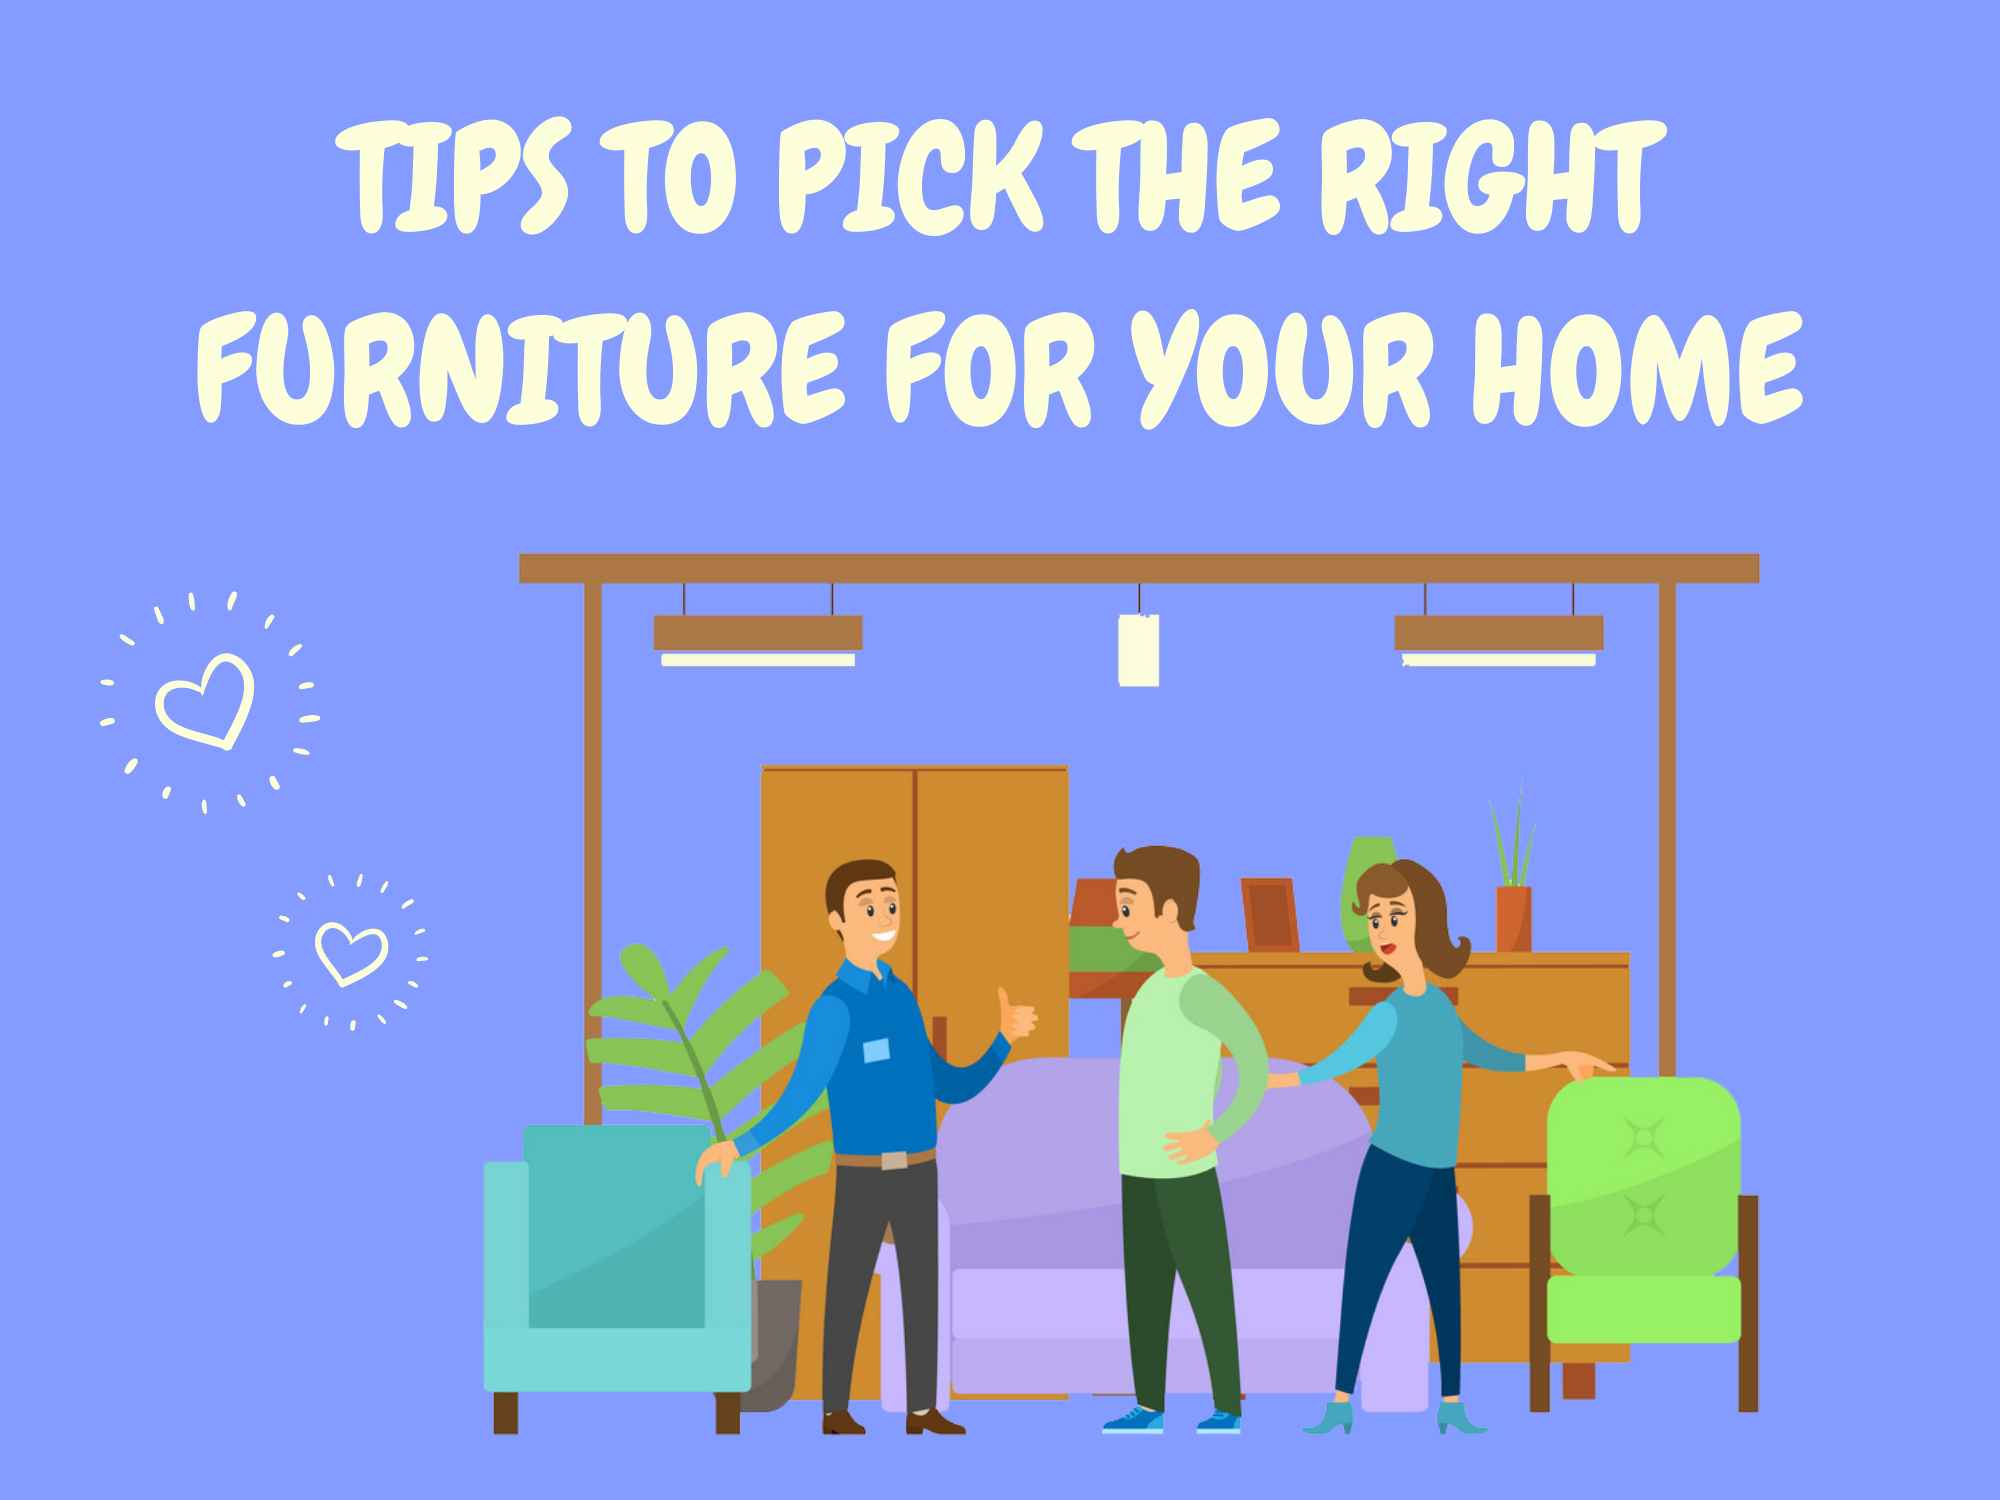 Tips-to-pick-the-right-furniture-for-your-home